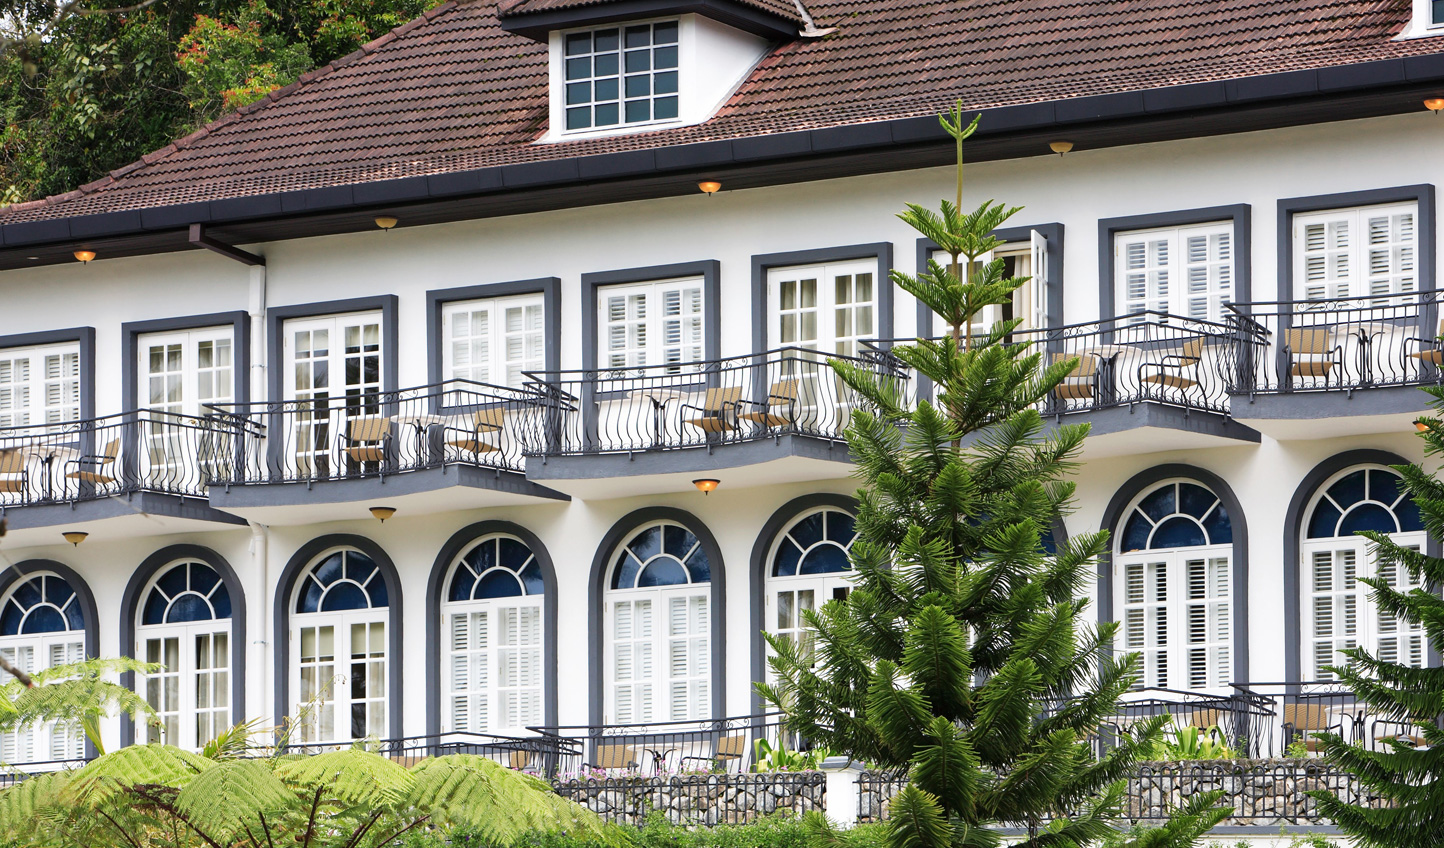 A touch of colonial style at the Cameron Highland Resort